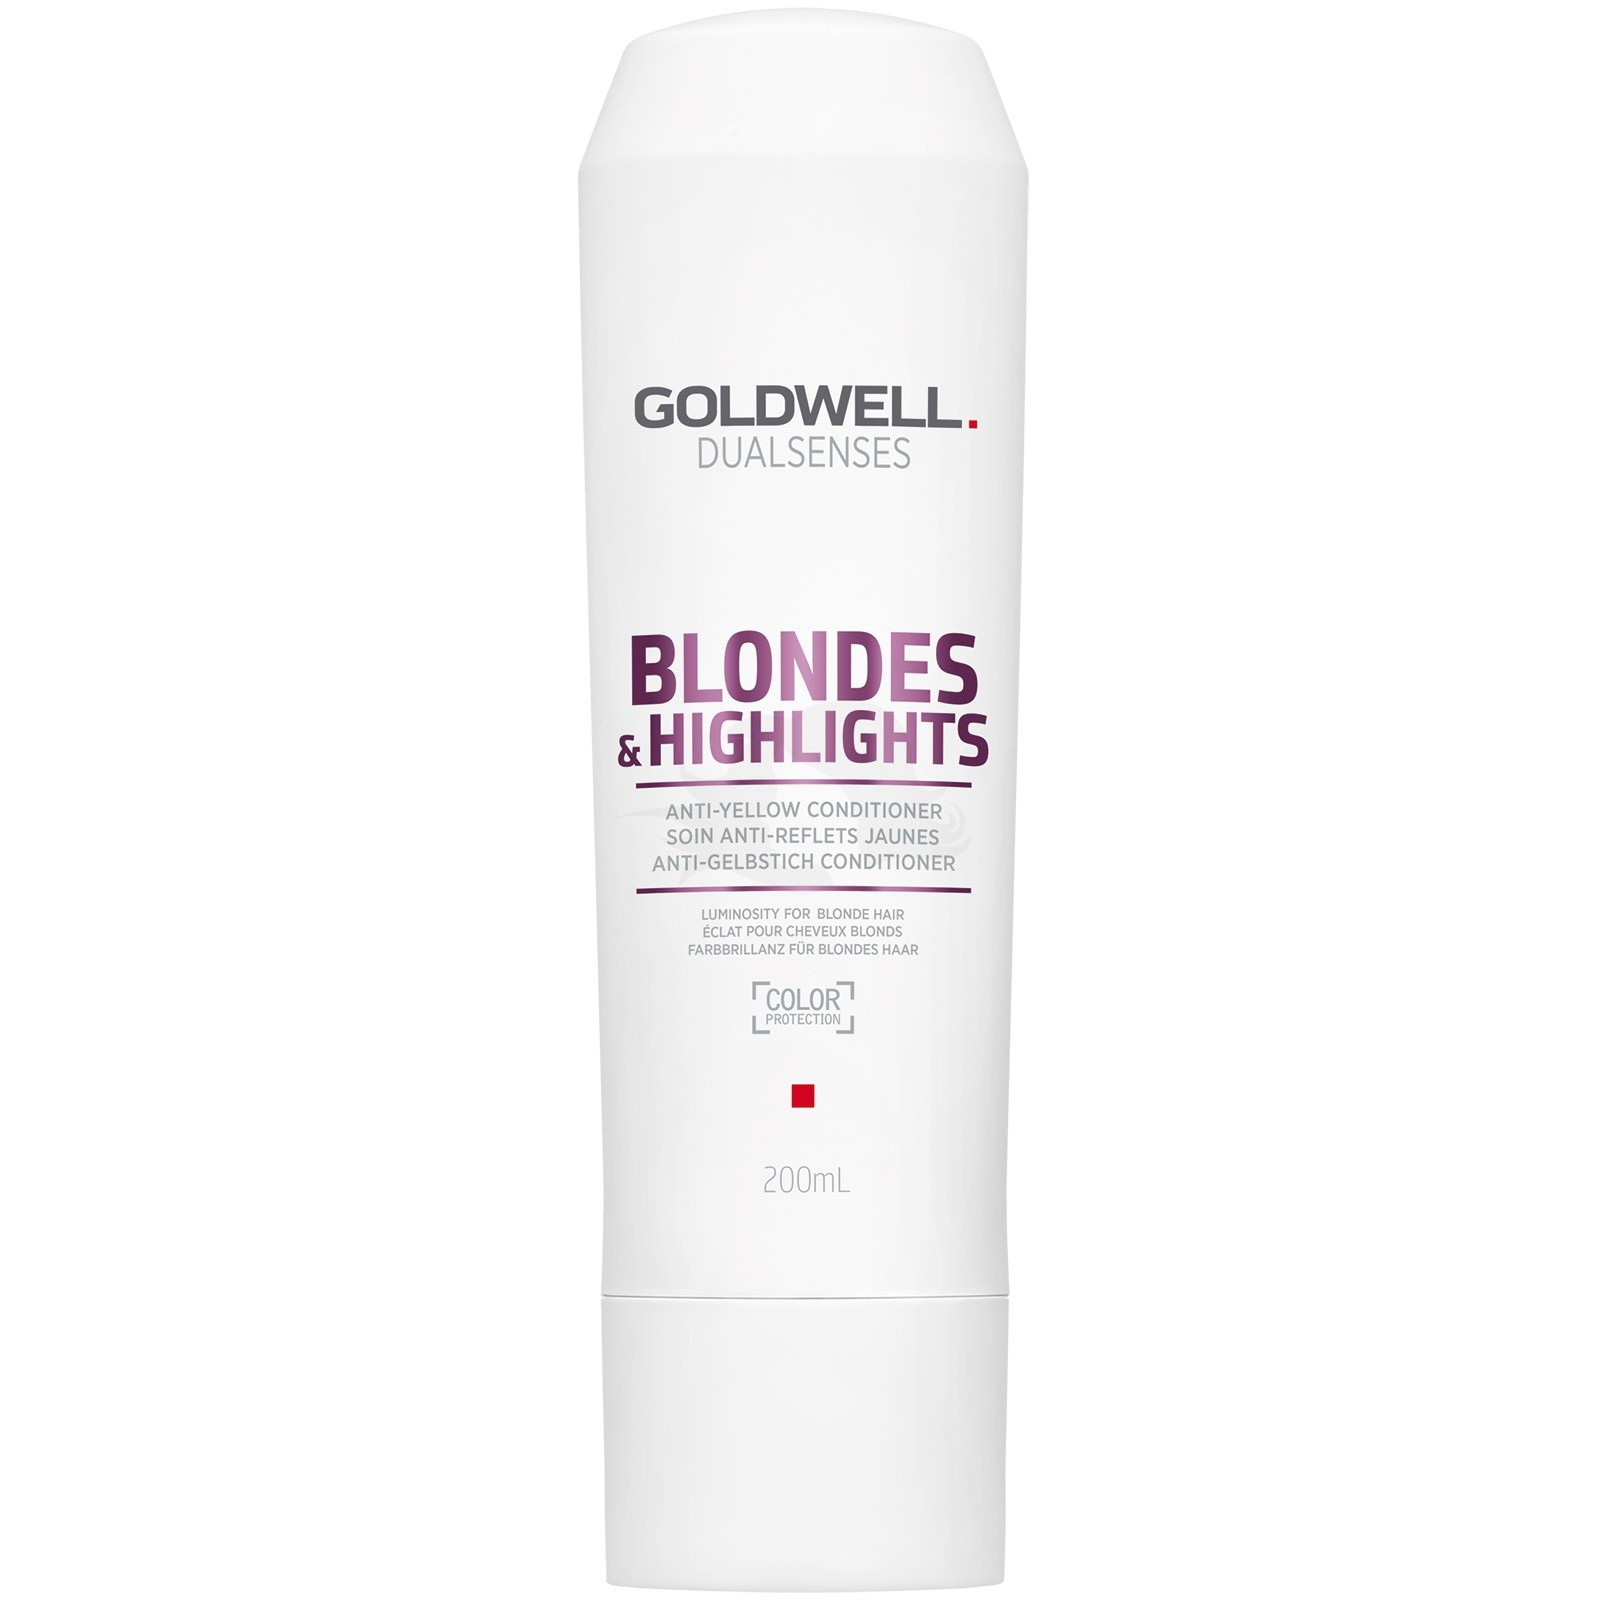 Goldwell Dualsenses Blondes Highlights Anti-Yellow Conditioner 200 ml